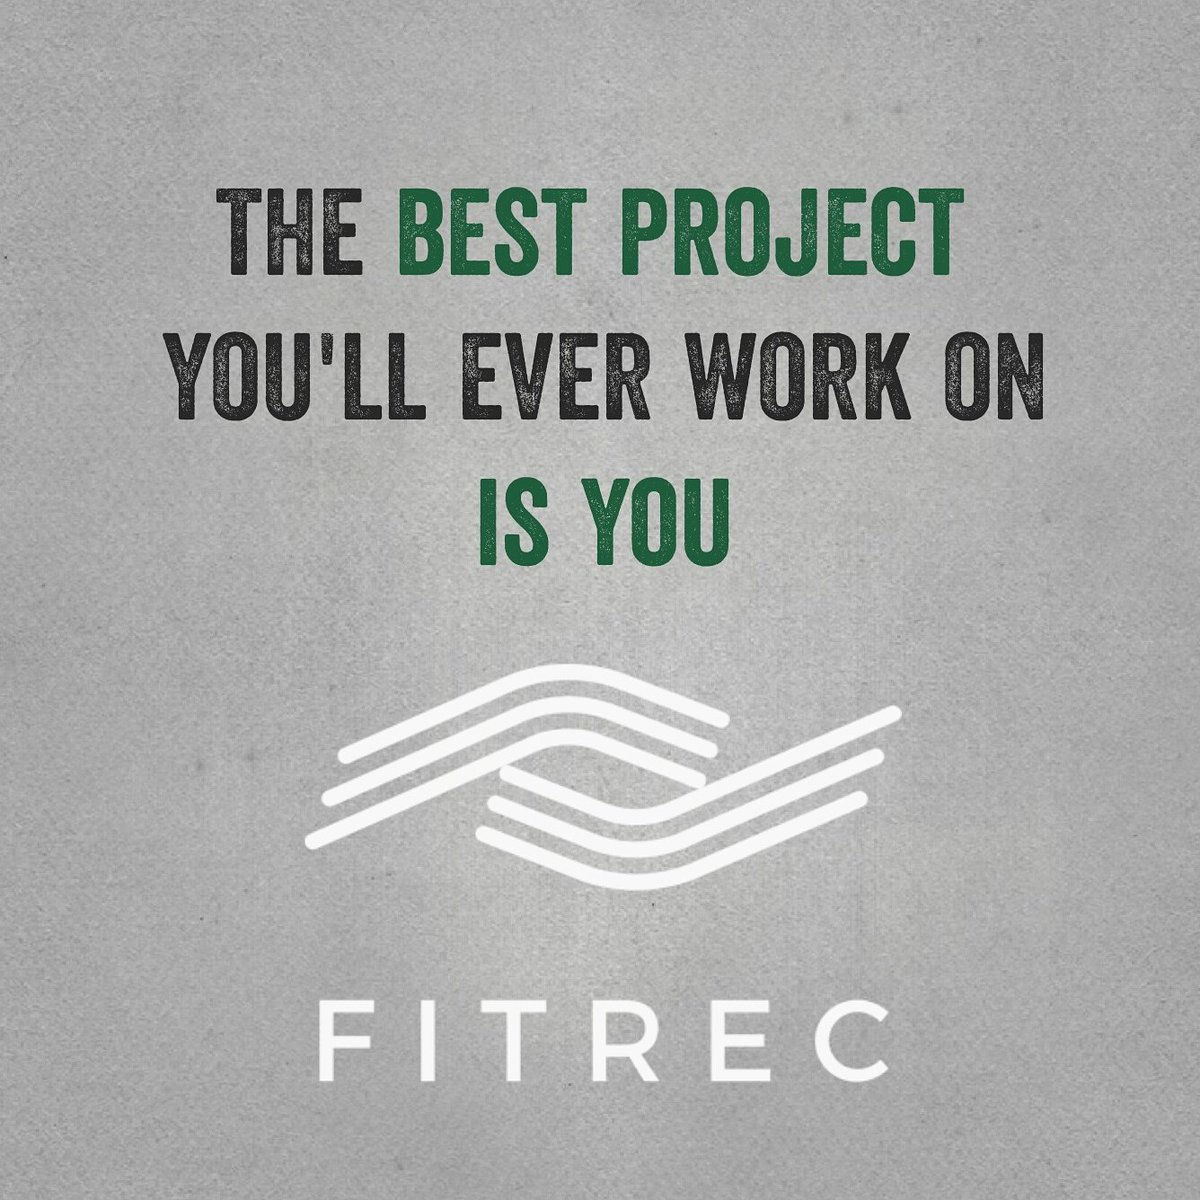 Work for it, work for you  #fitrec #socialfitness #fitness #health #believe #fitfam #healthyhabits #fitgoals #fitspo #fit #goals #fitquotes <br>http://pic.twitter.com/jXQcRqN5le